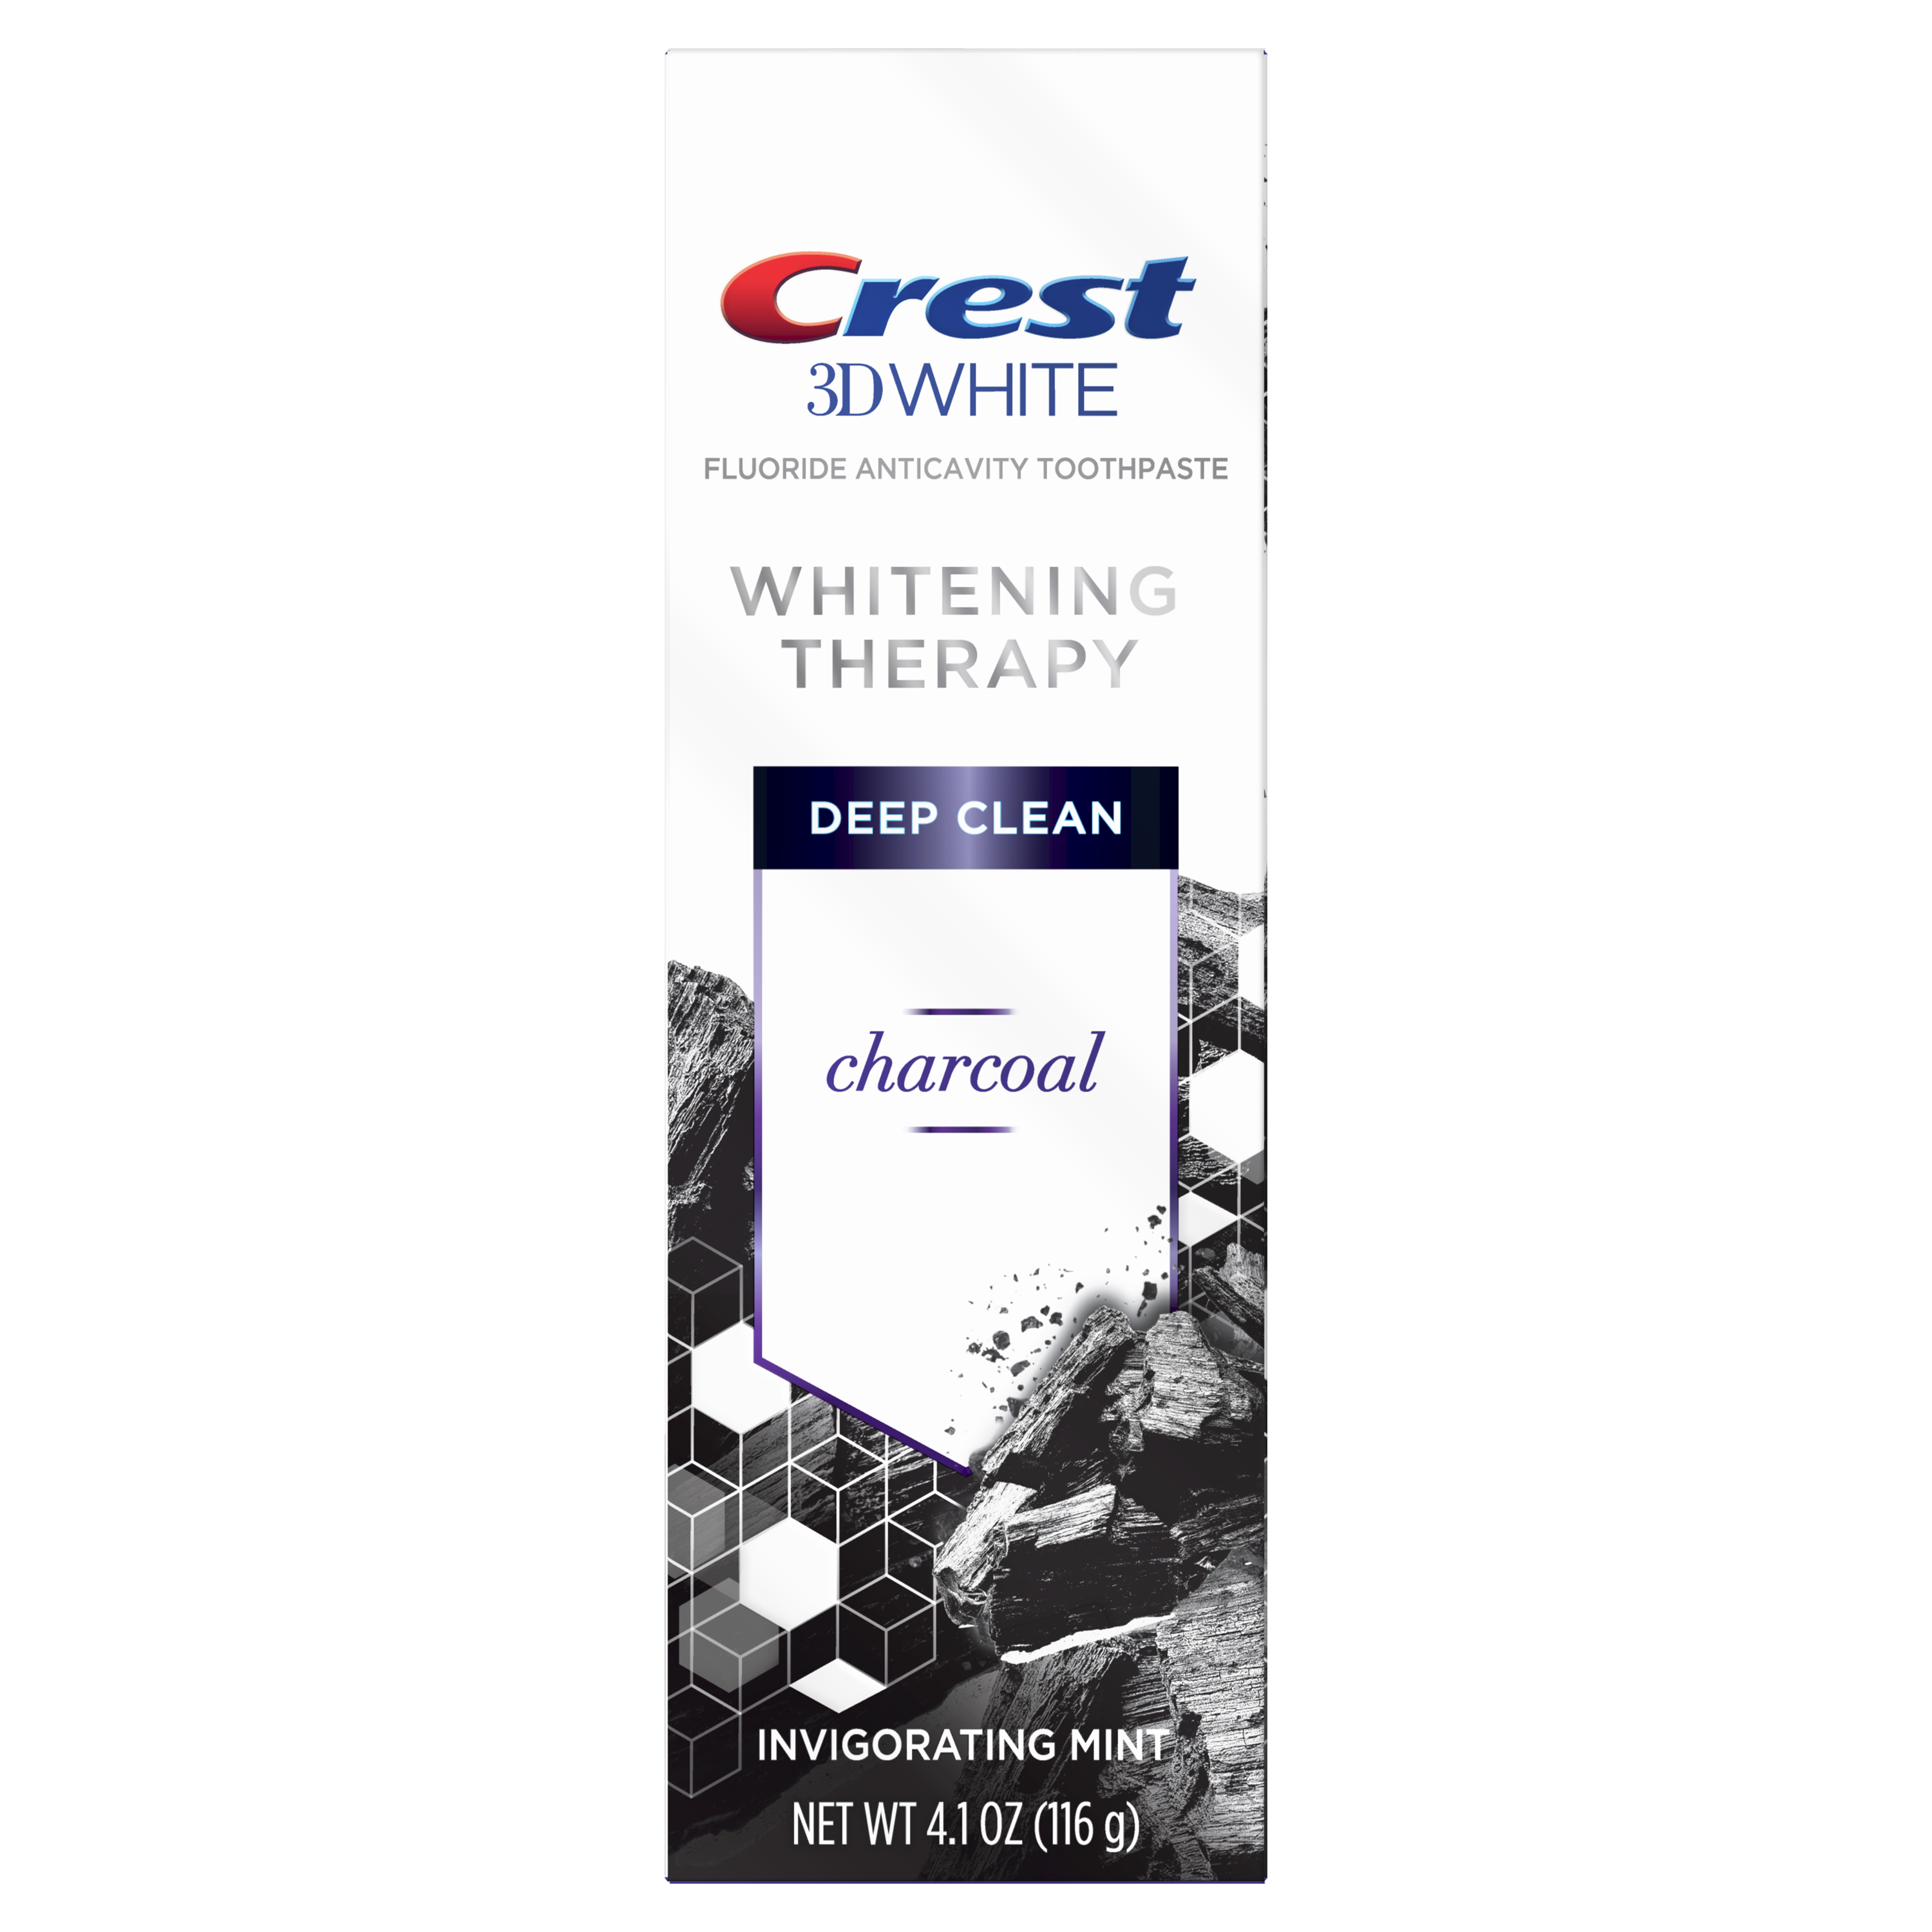 Crest 3D White Whitening Therapy Deep Clean Charcoal. (Suministrada)